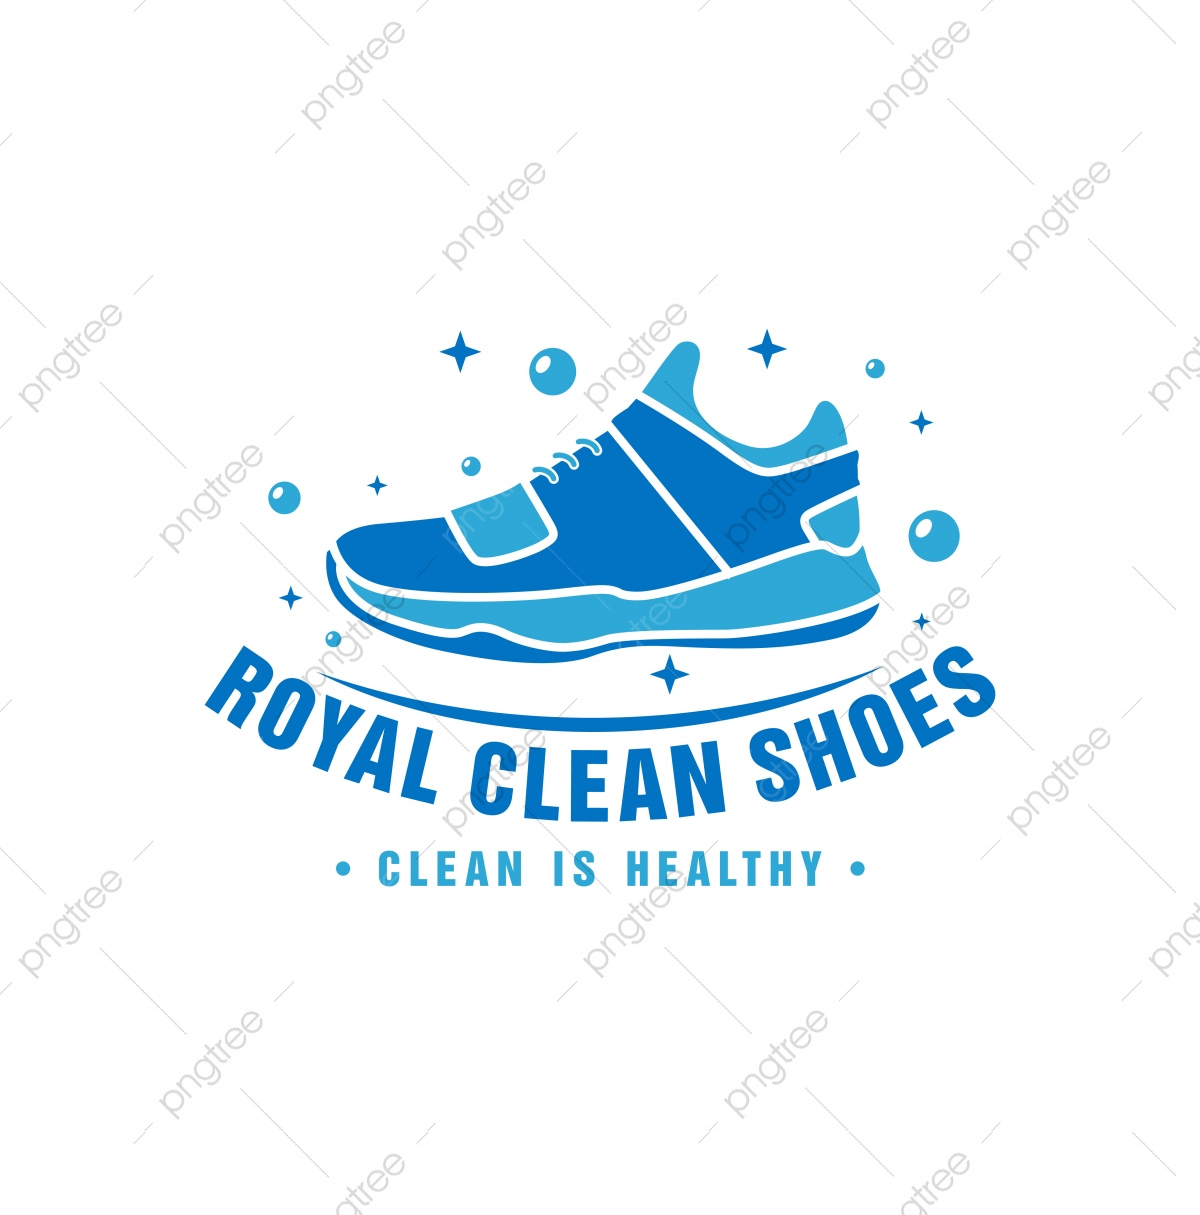 laundry logo png vector psd and clipart with transparent background for free download pngtree https pngtree com freepng shoe laundry logo design 5388838 html